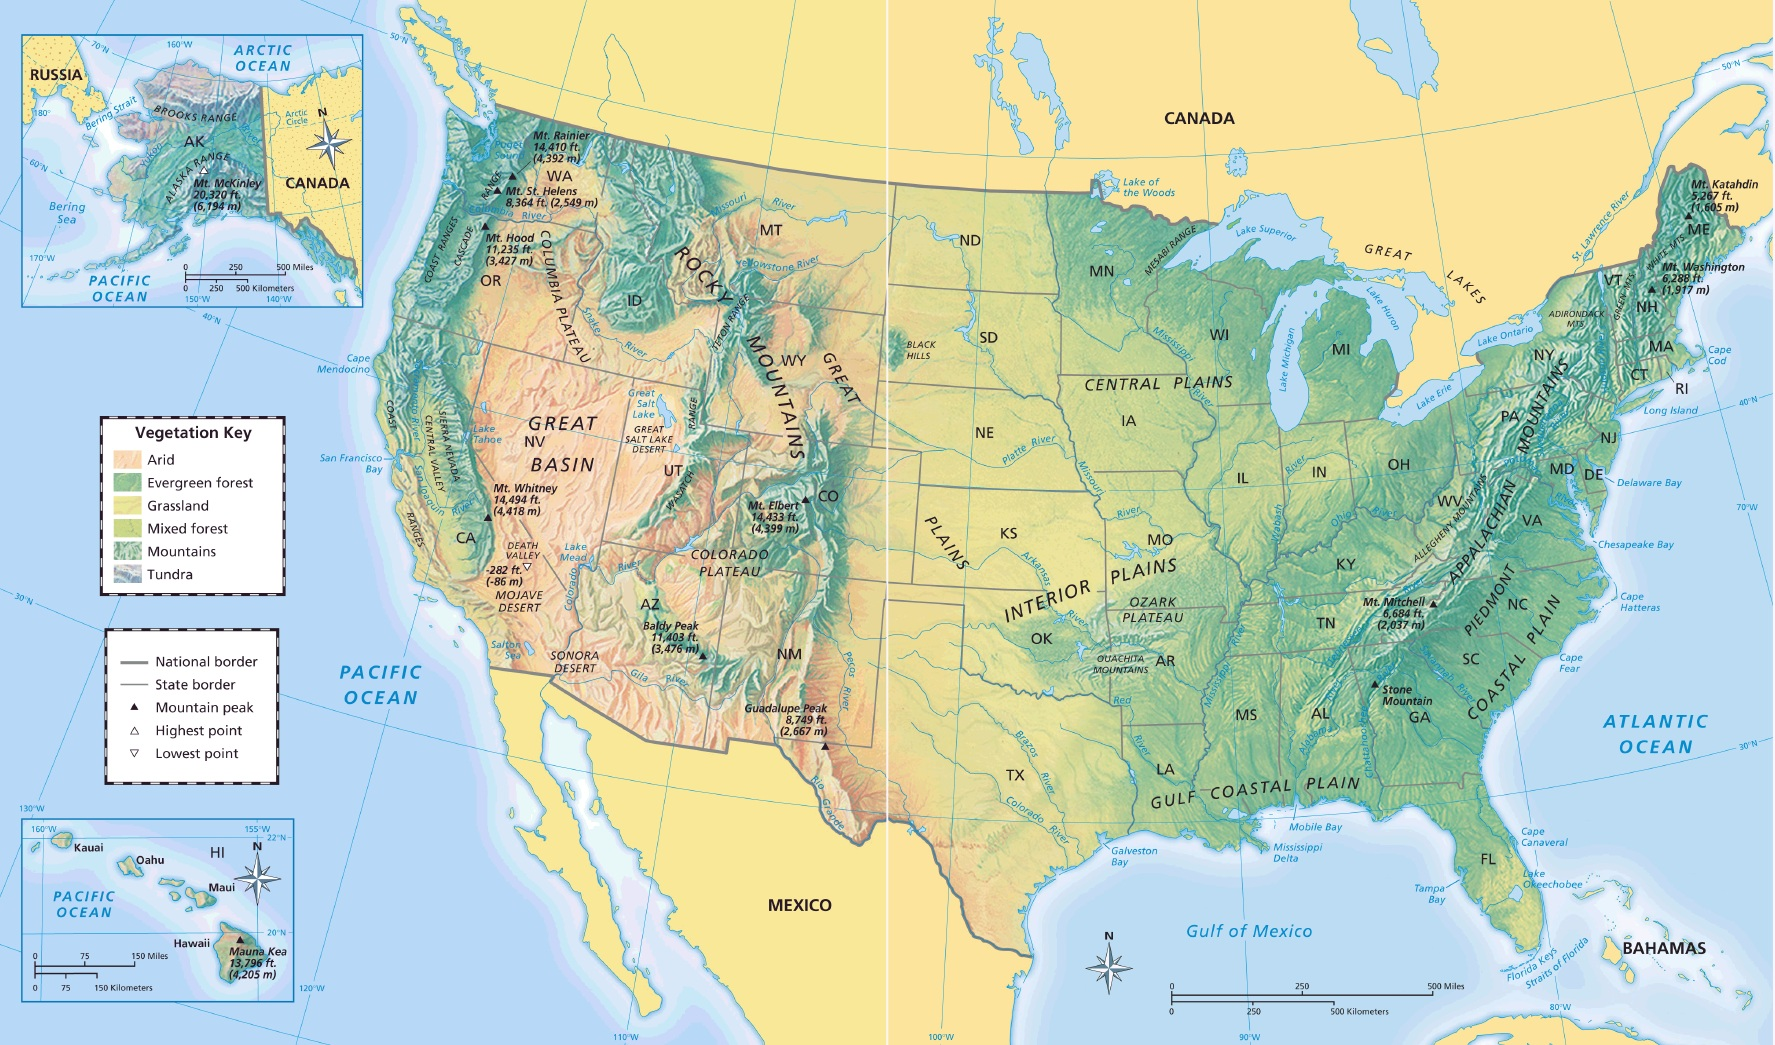 Maps clipart geographical feature, Picture #119600 maps ...